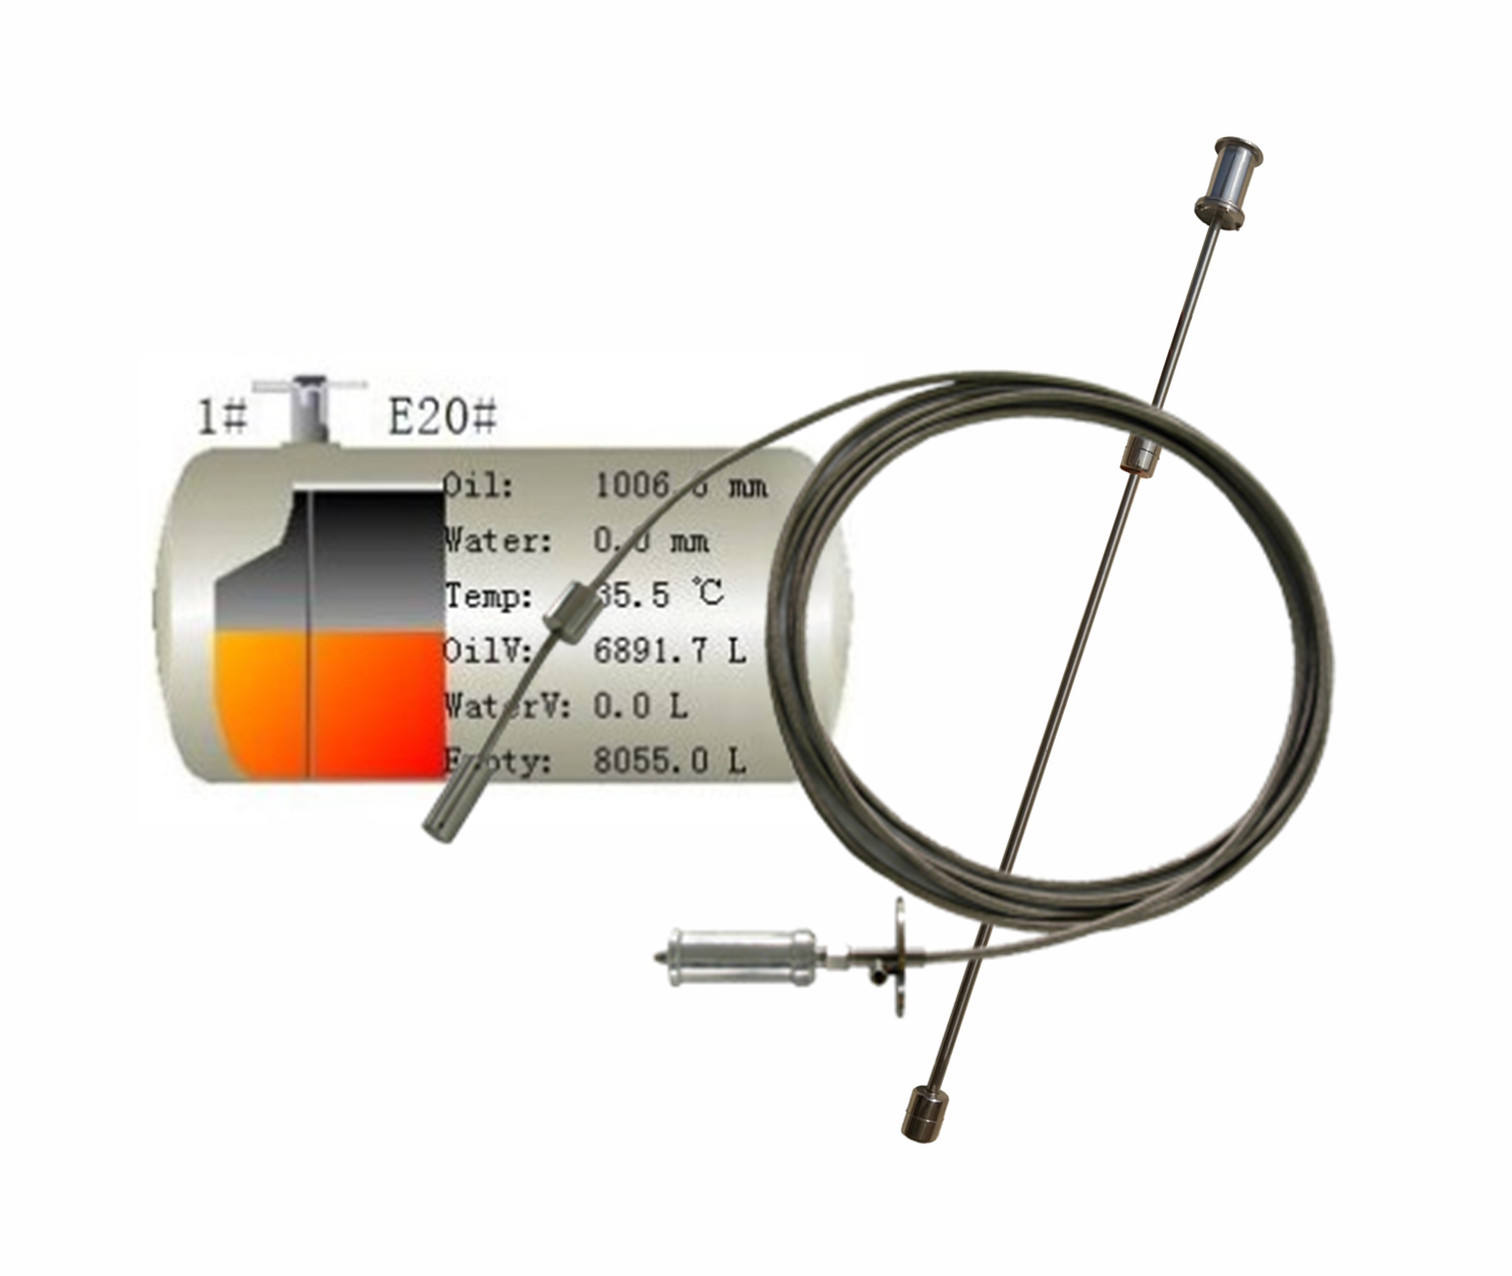 600-20000mm length fuel tank/oil depot Digital flexible magnetostrictive float probe oil/LPG fuel level sensor rs485